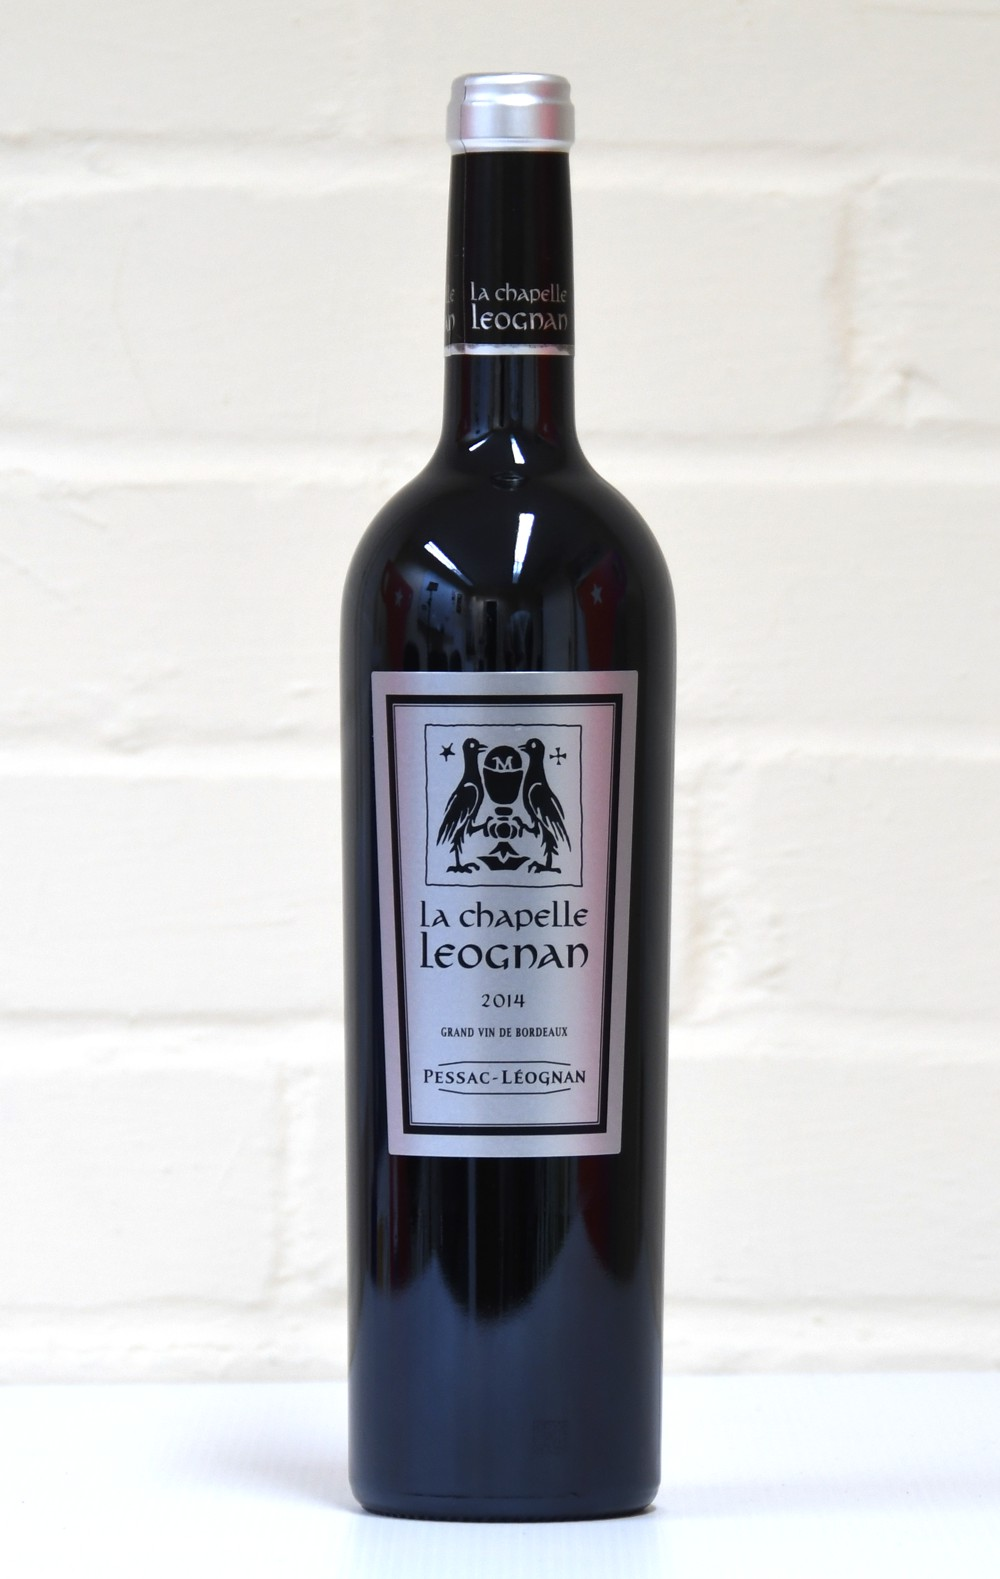 Try our Chateau de lagarde wine with taste of Cabernet sauvignon and merlot